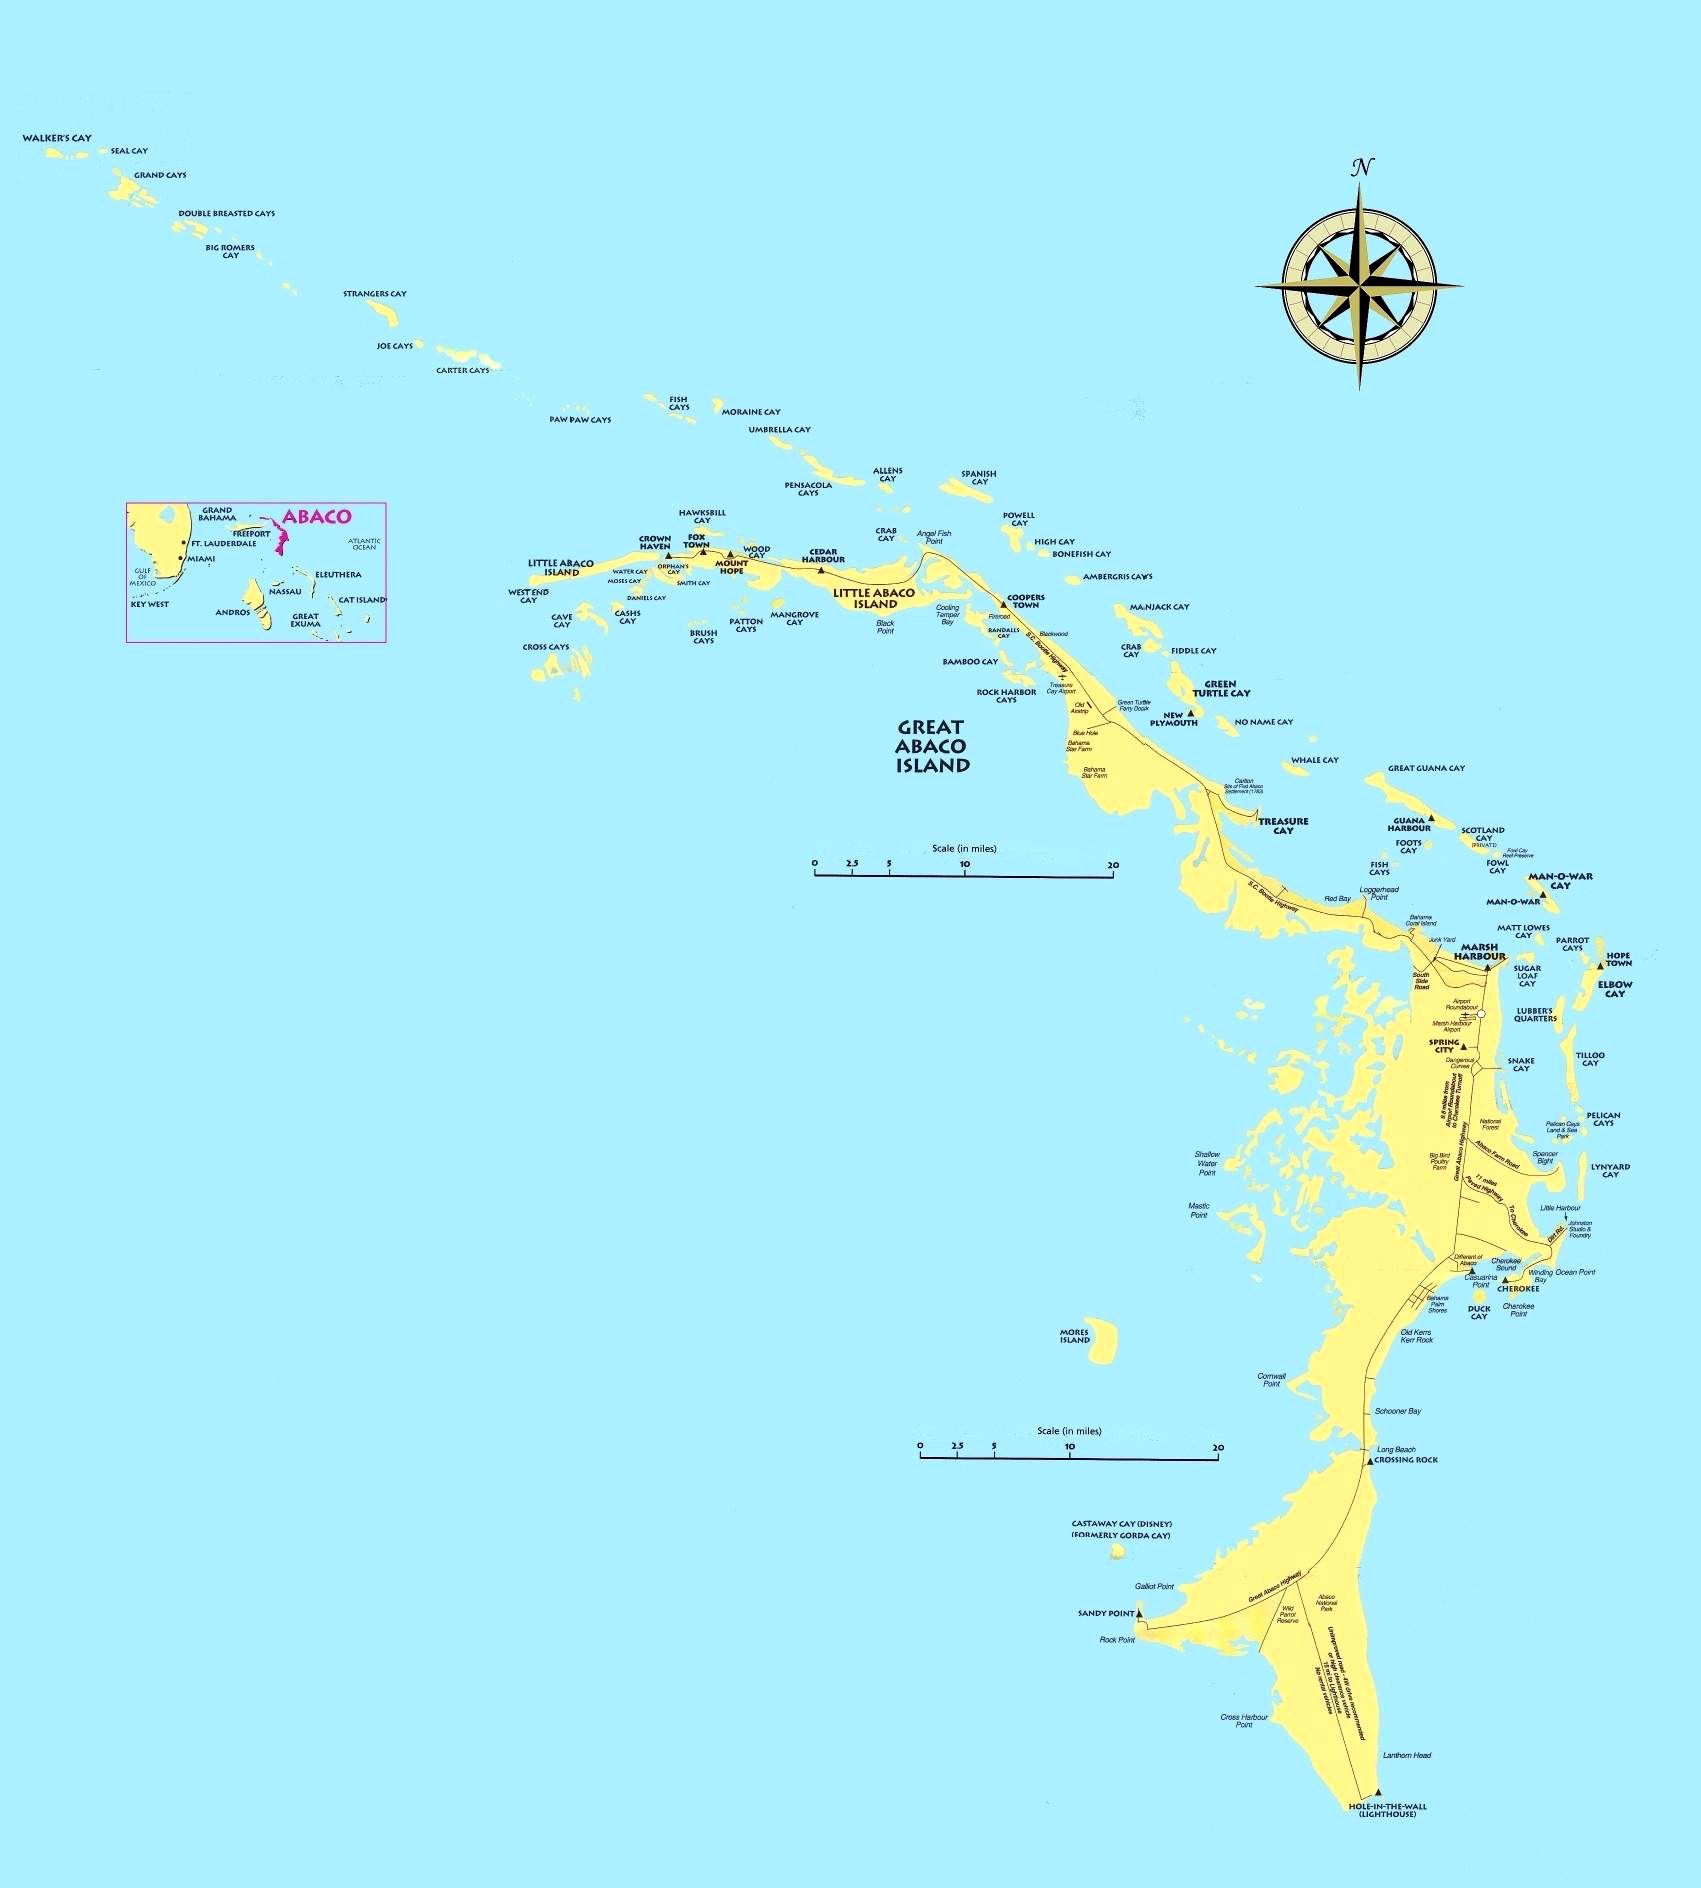 Large Abaco Maps for Free Download and Print | High ...